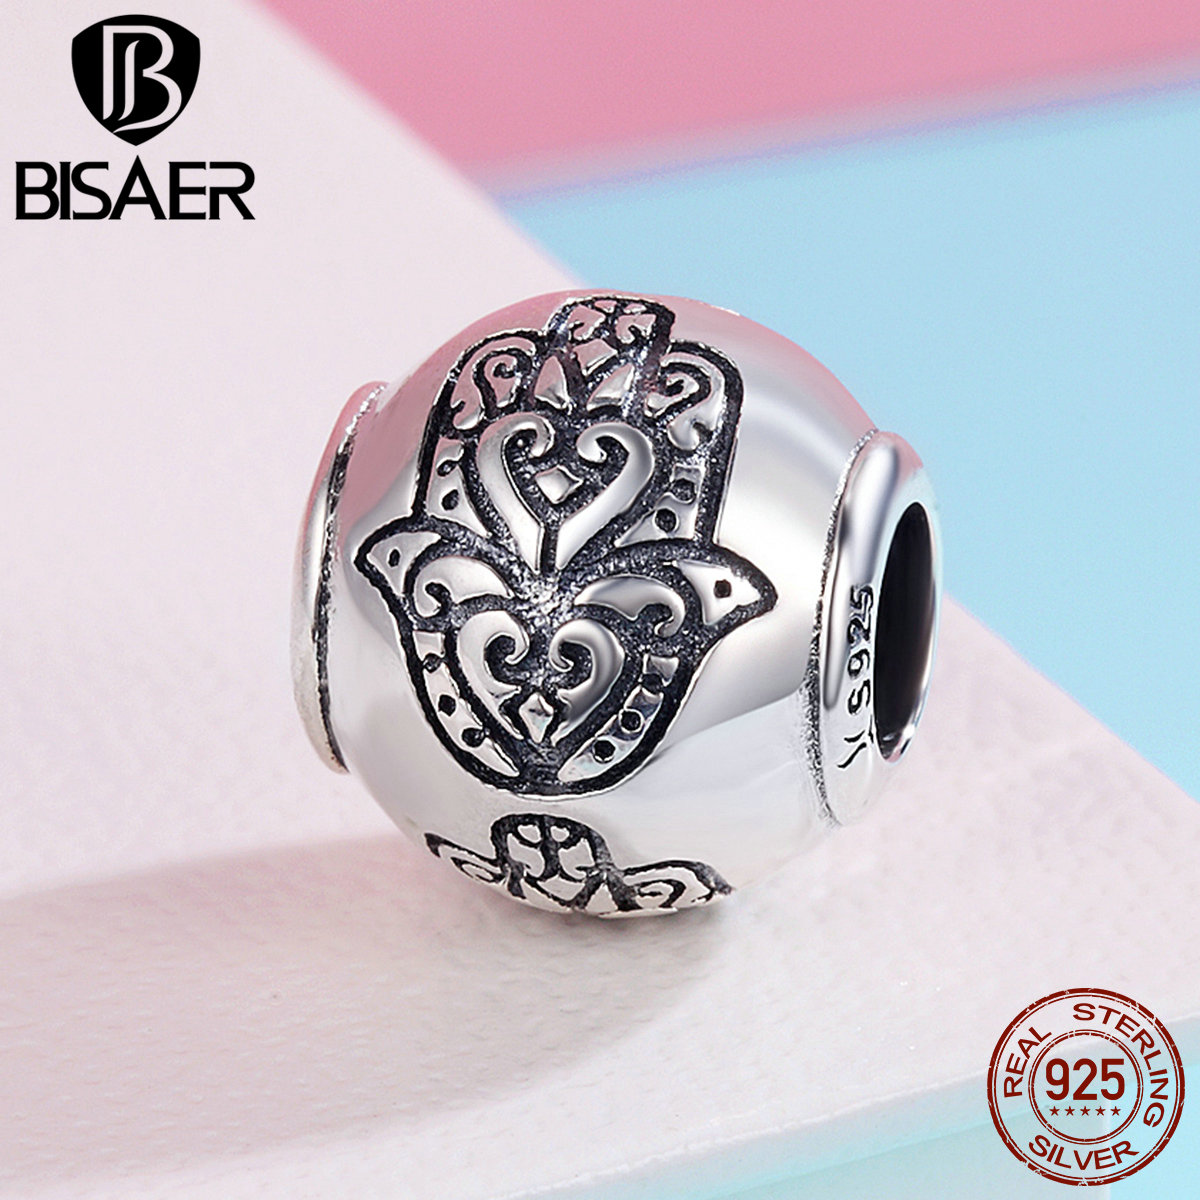 Jewelry & Accessories Bisaer Hot Sale 925 Sterling Silver Beads Fatima Hamsa Hand Charm Beads Fit Original Pan Charm Bracelet Diy Jewelry Gxc306 Numerous In Variety